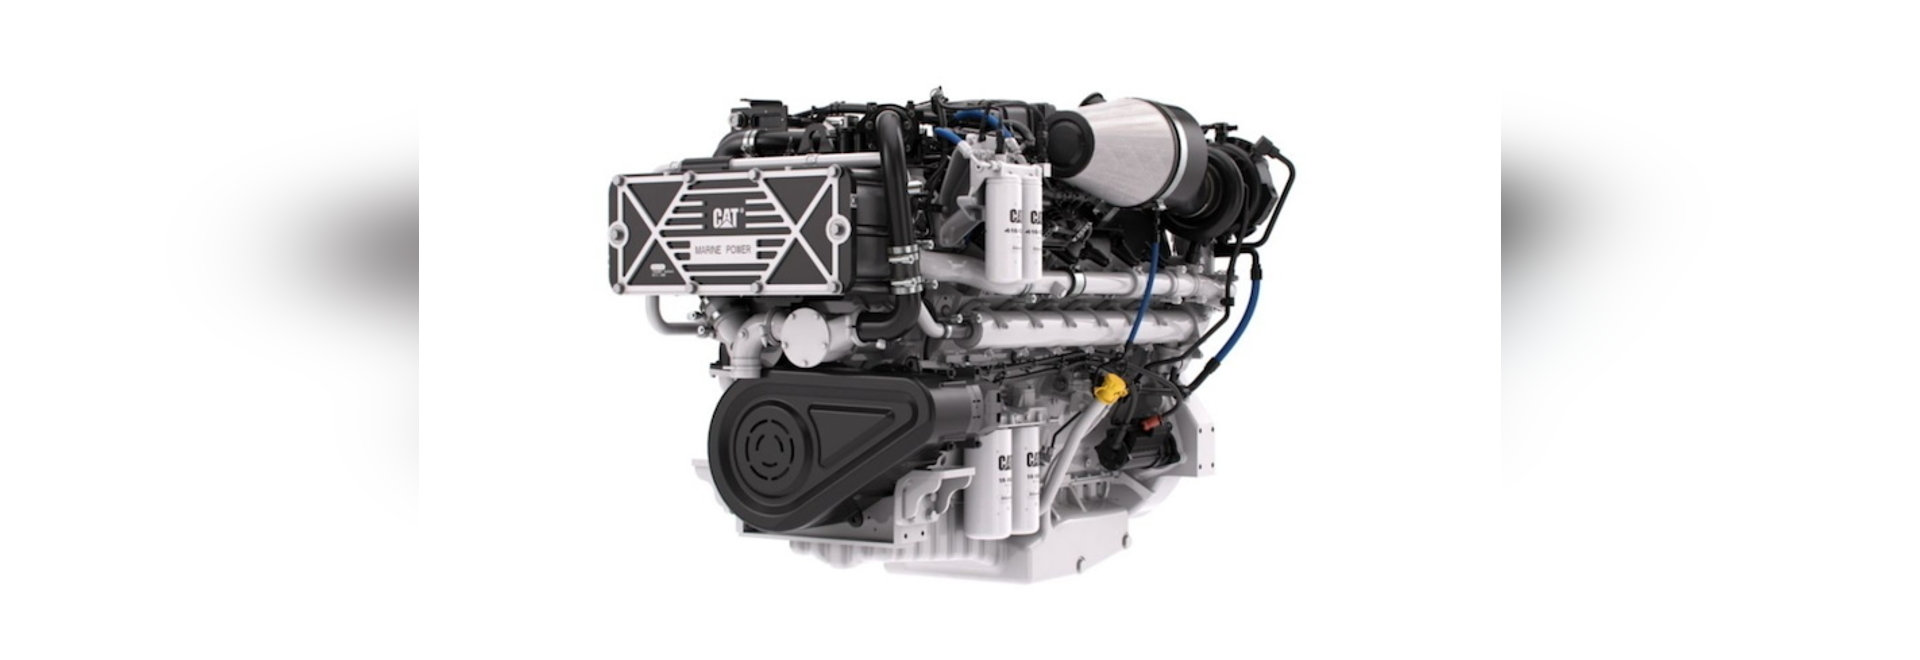 The Cat C32B marine engine will be available for order in fall of 2020.